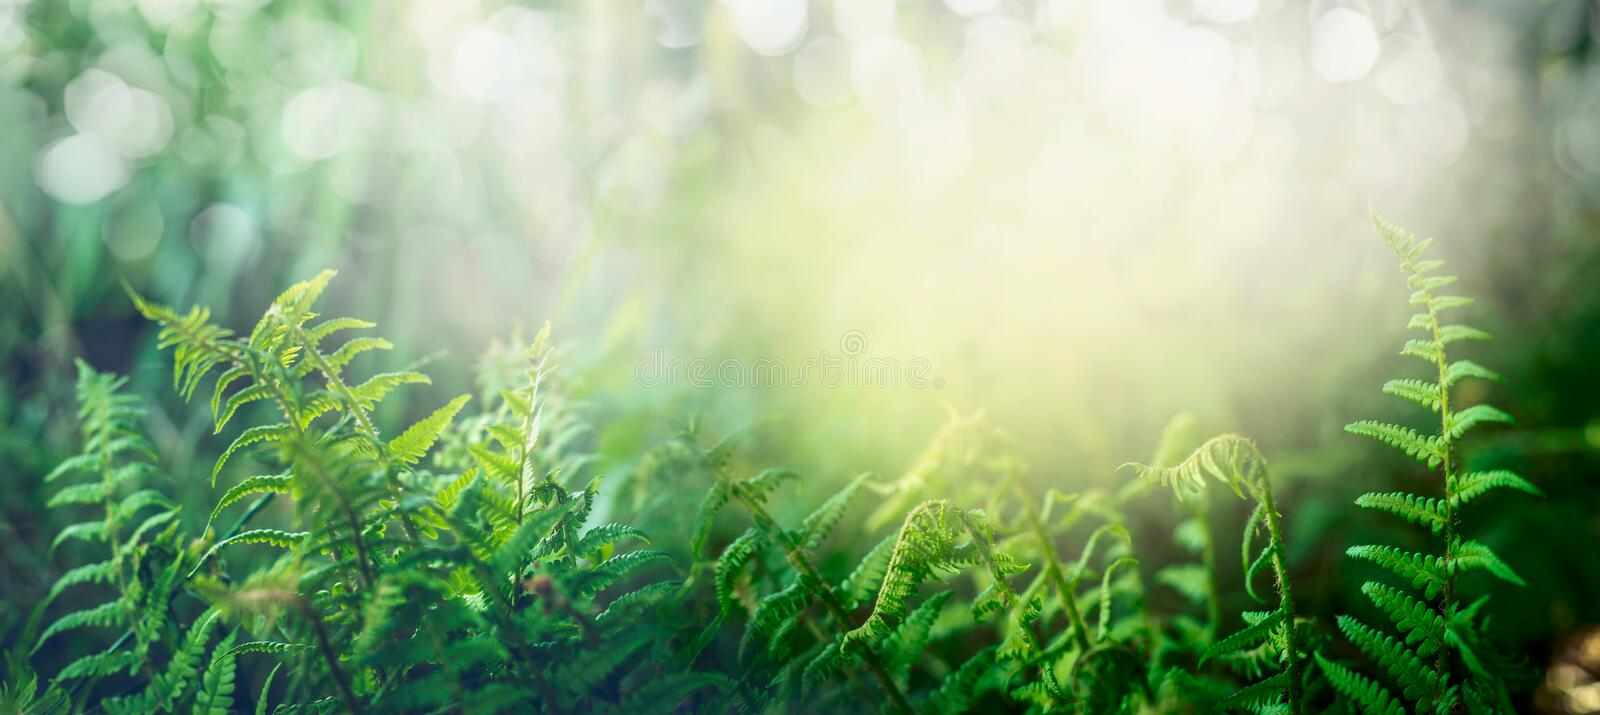 Fern in tropical jungle forest with sun light, outdoor nature background. Banner stock photos